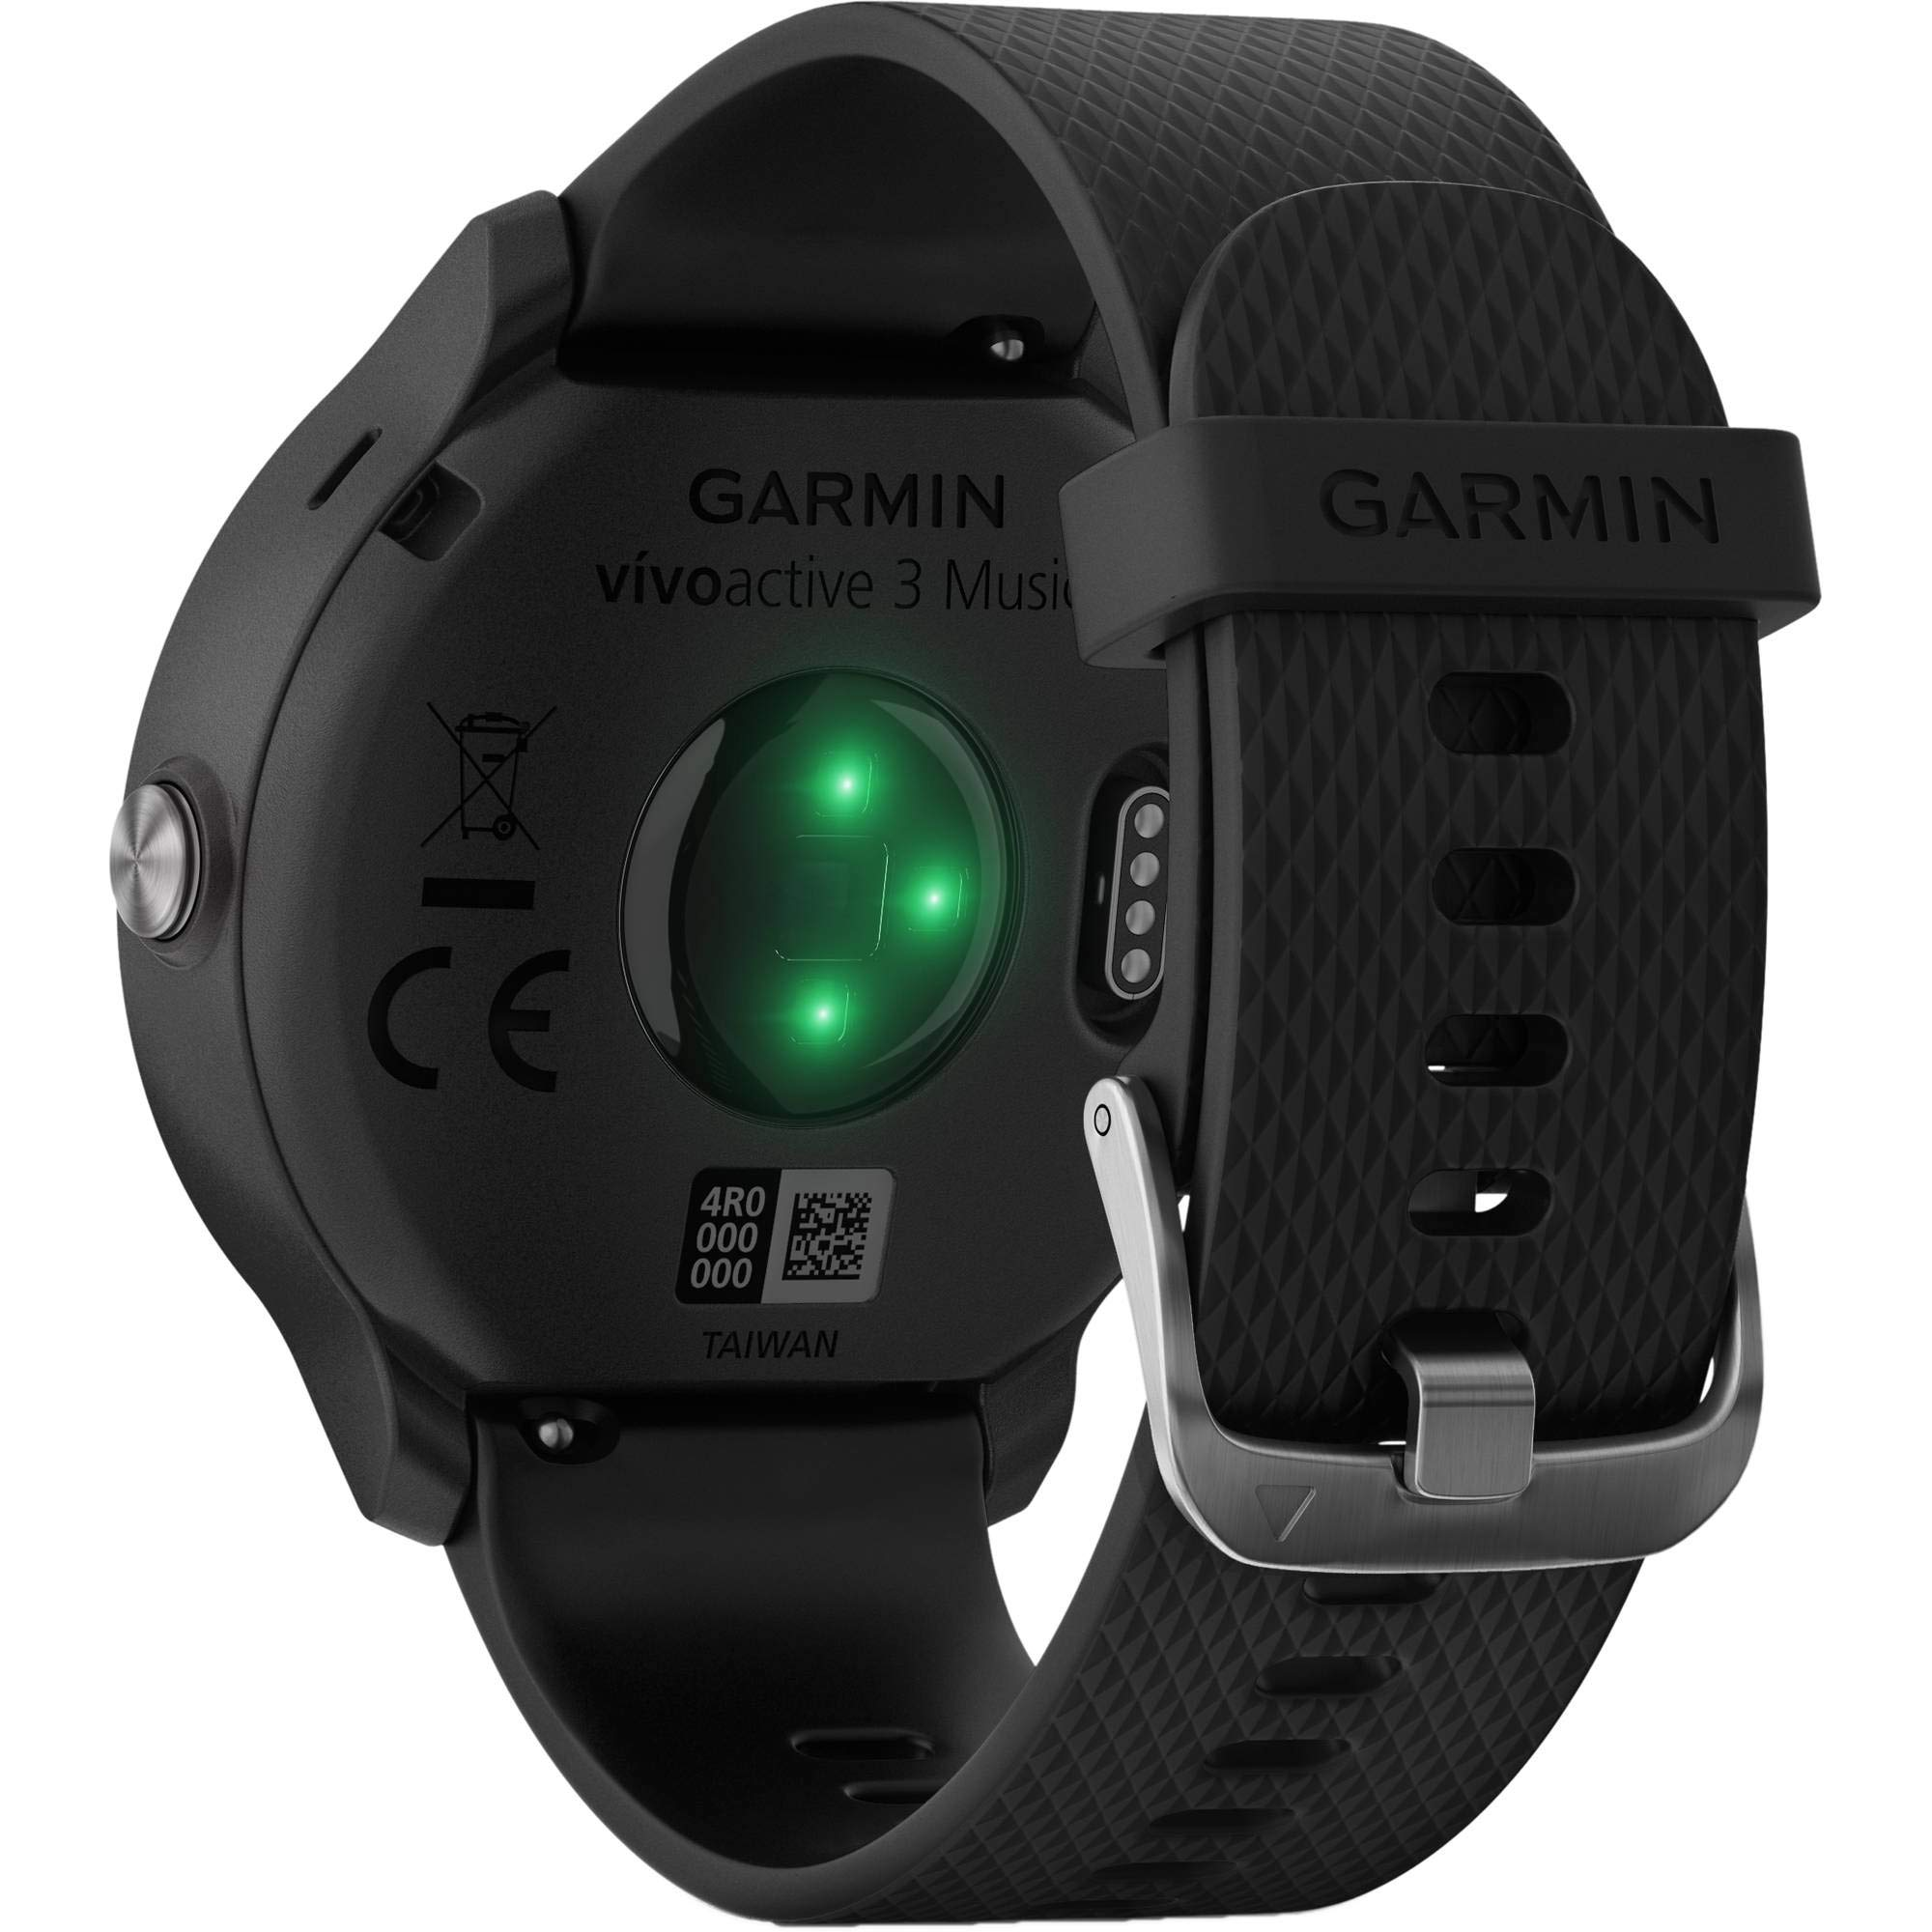 Garmin Vivoactive 3 Music - GPS Smart Watch with Music Storage & Playback - Bundle with Tempered Glass Screen Protector + 1 Year Extended Warranty by Garmin (Image #3)